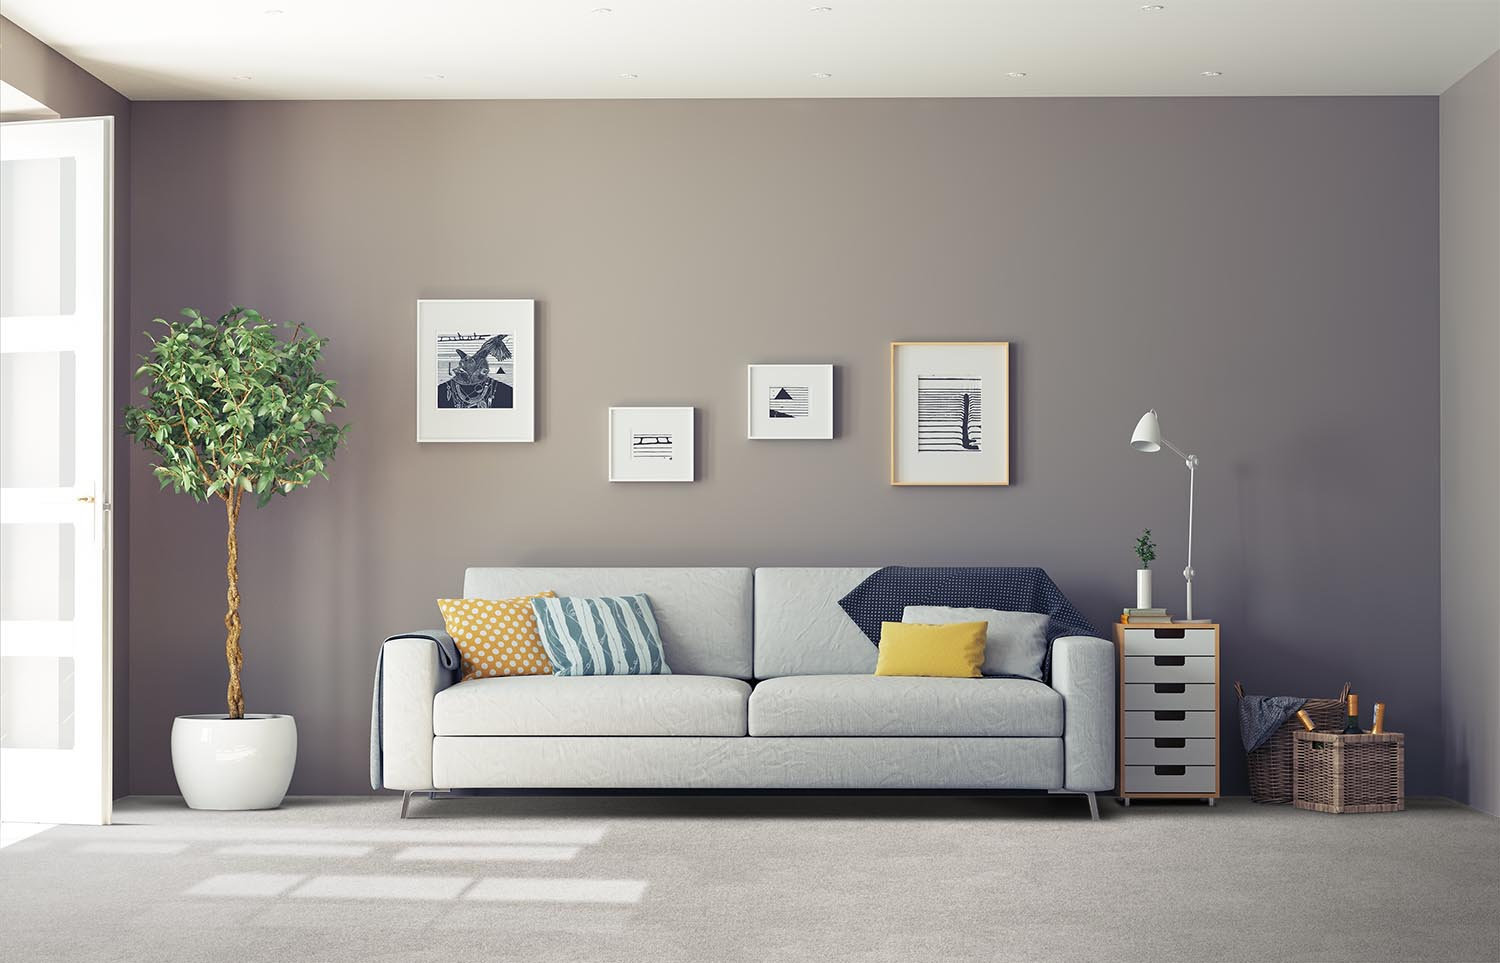 Softology - S201 - Willow classic living room